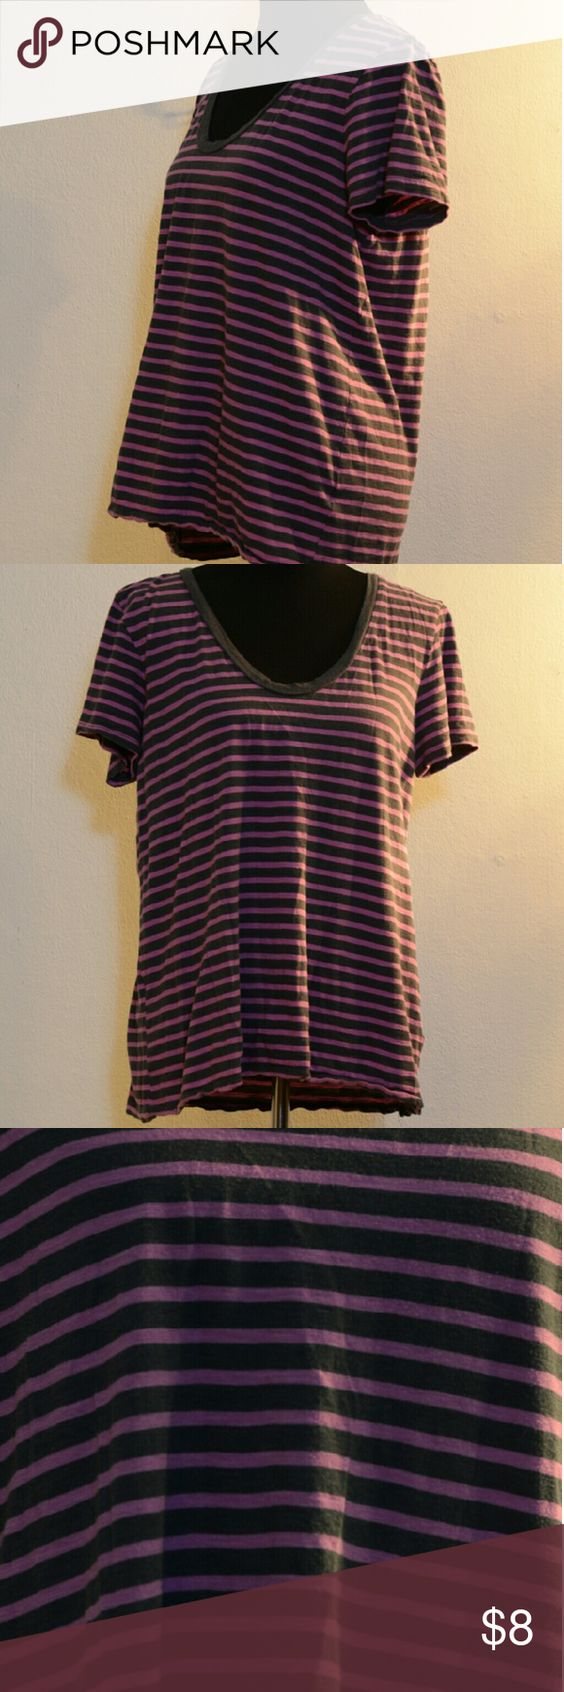 Halogen striped shirt Halogen scoop neck t-shirt Halogen Tops Tees - Short Sleeve